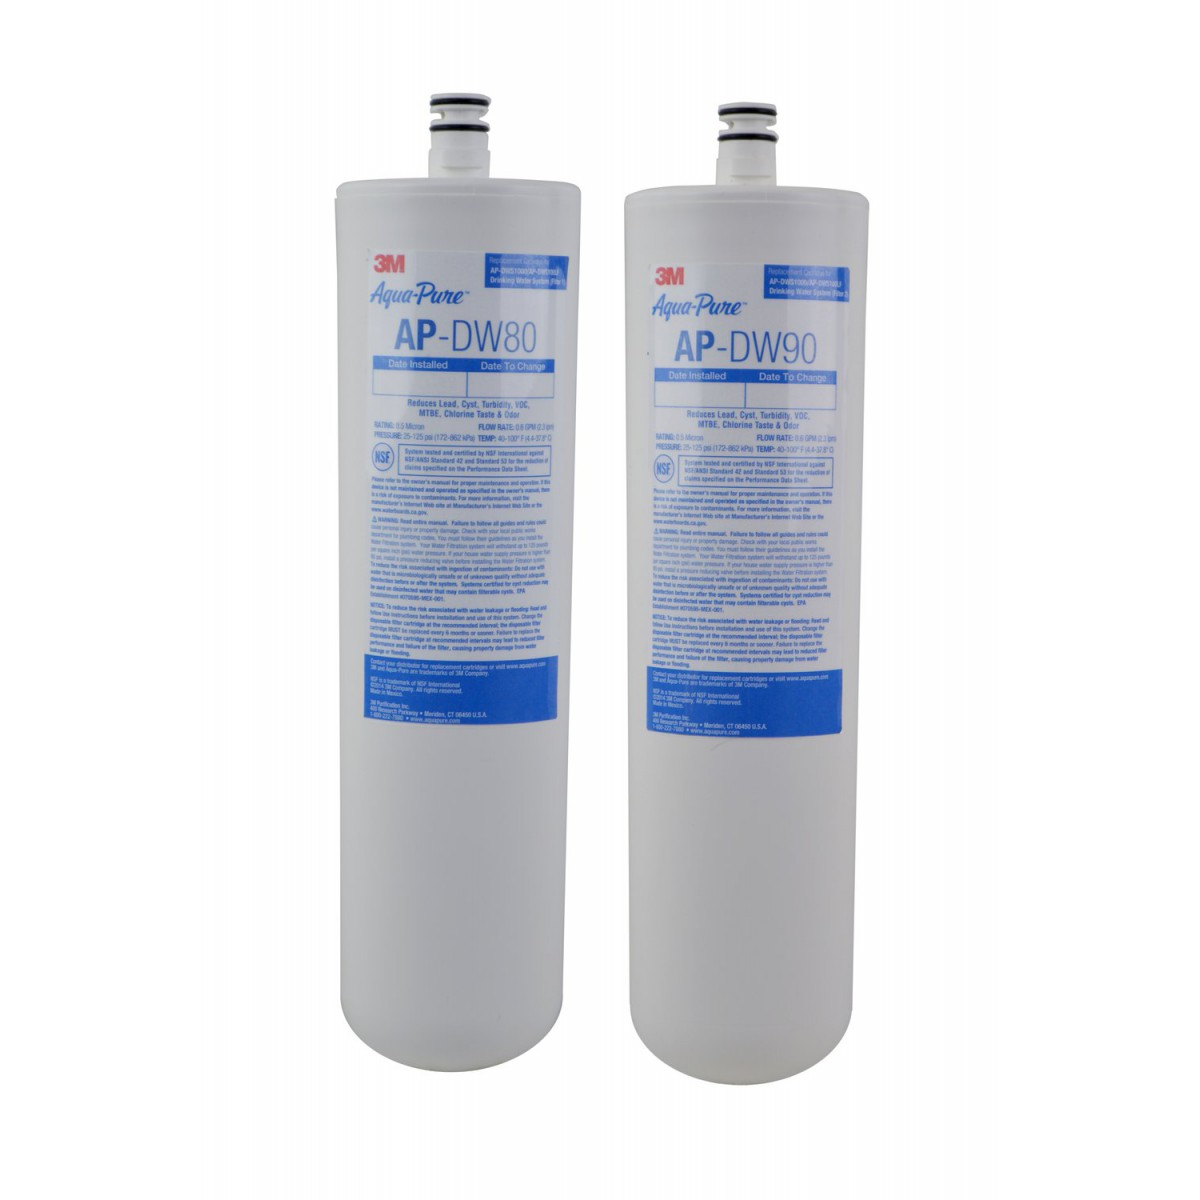 Discount Water Filters and Air Filters at Discount Filter Store.com